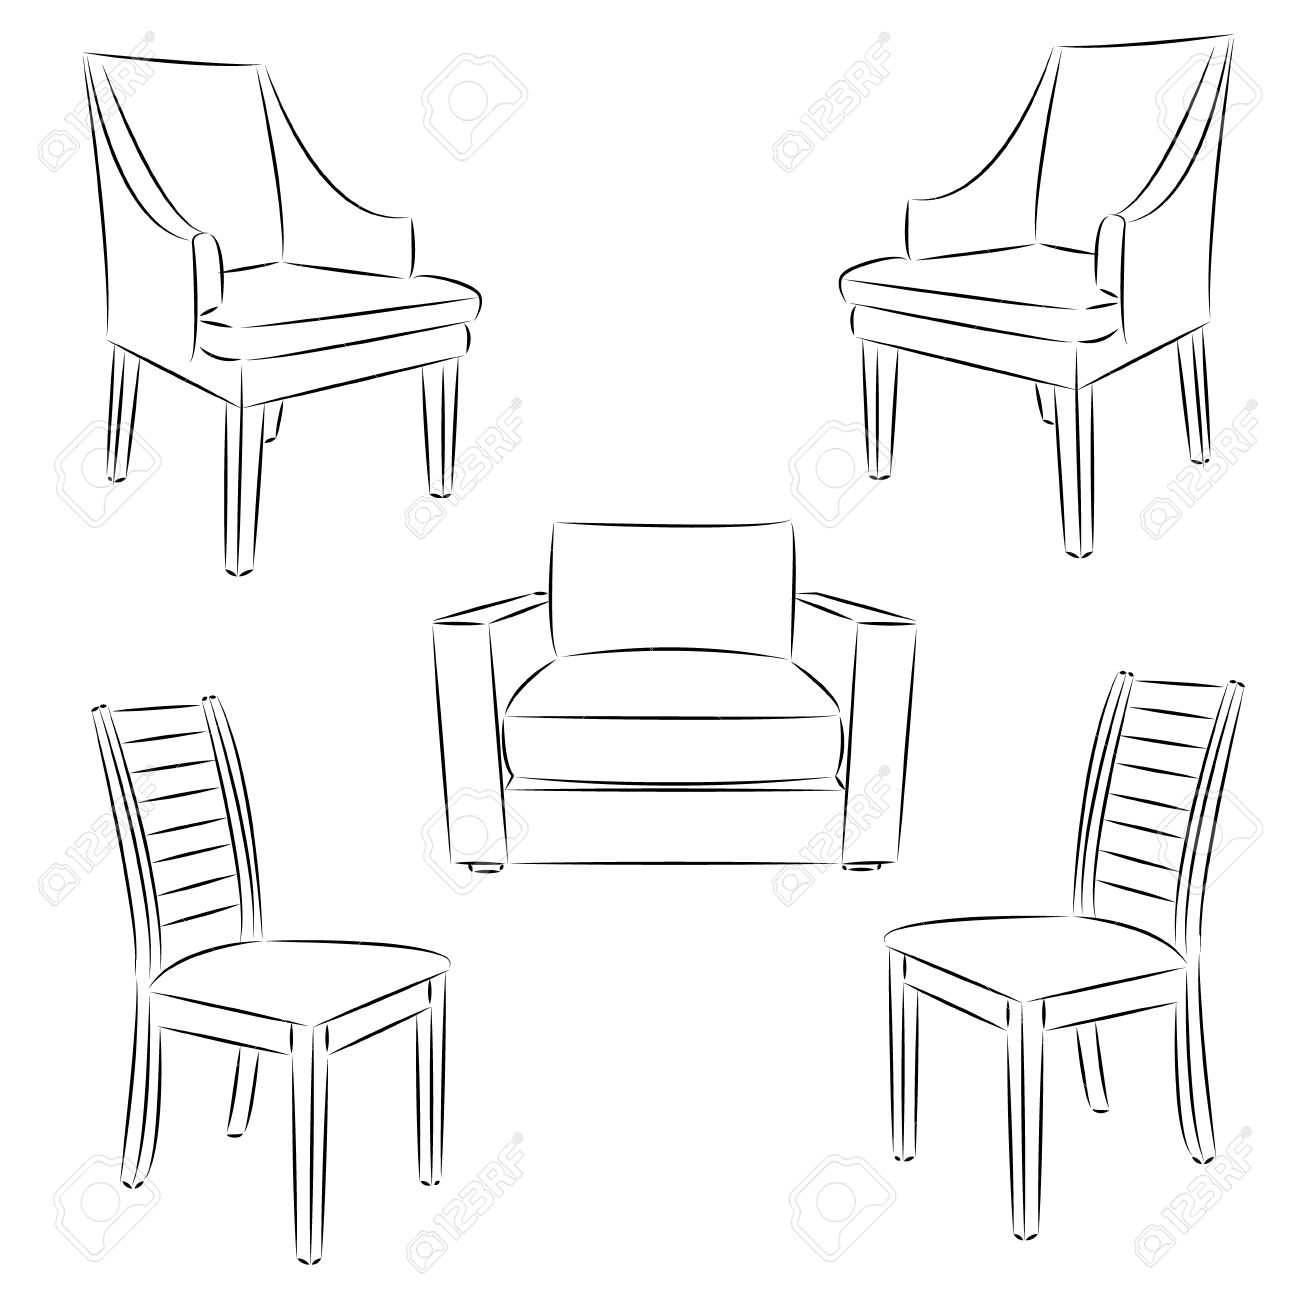 Chair icon  Classic chair outline contour drawing  Vector illustration